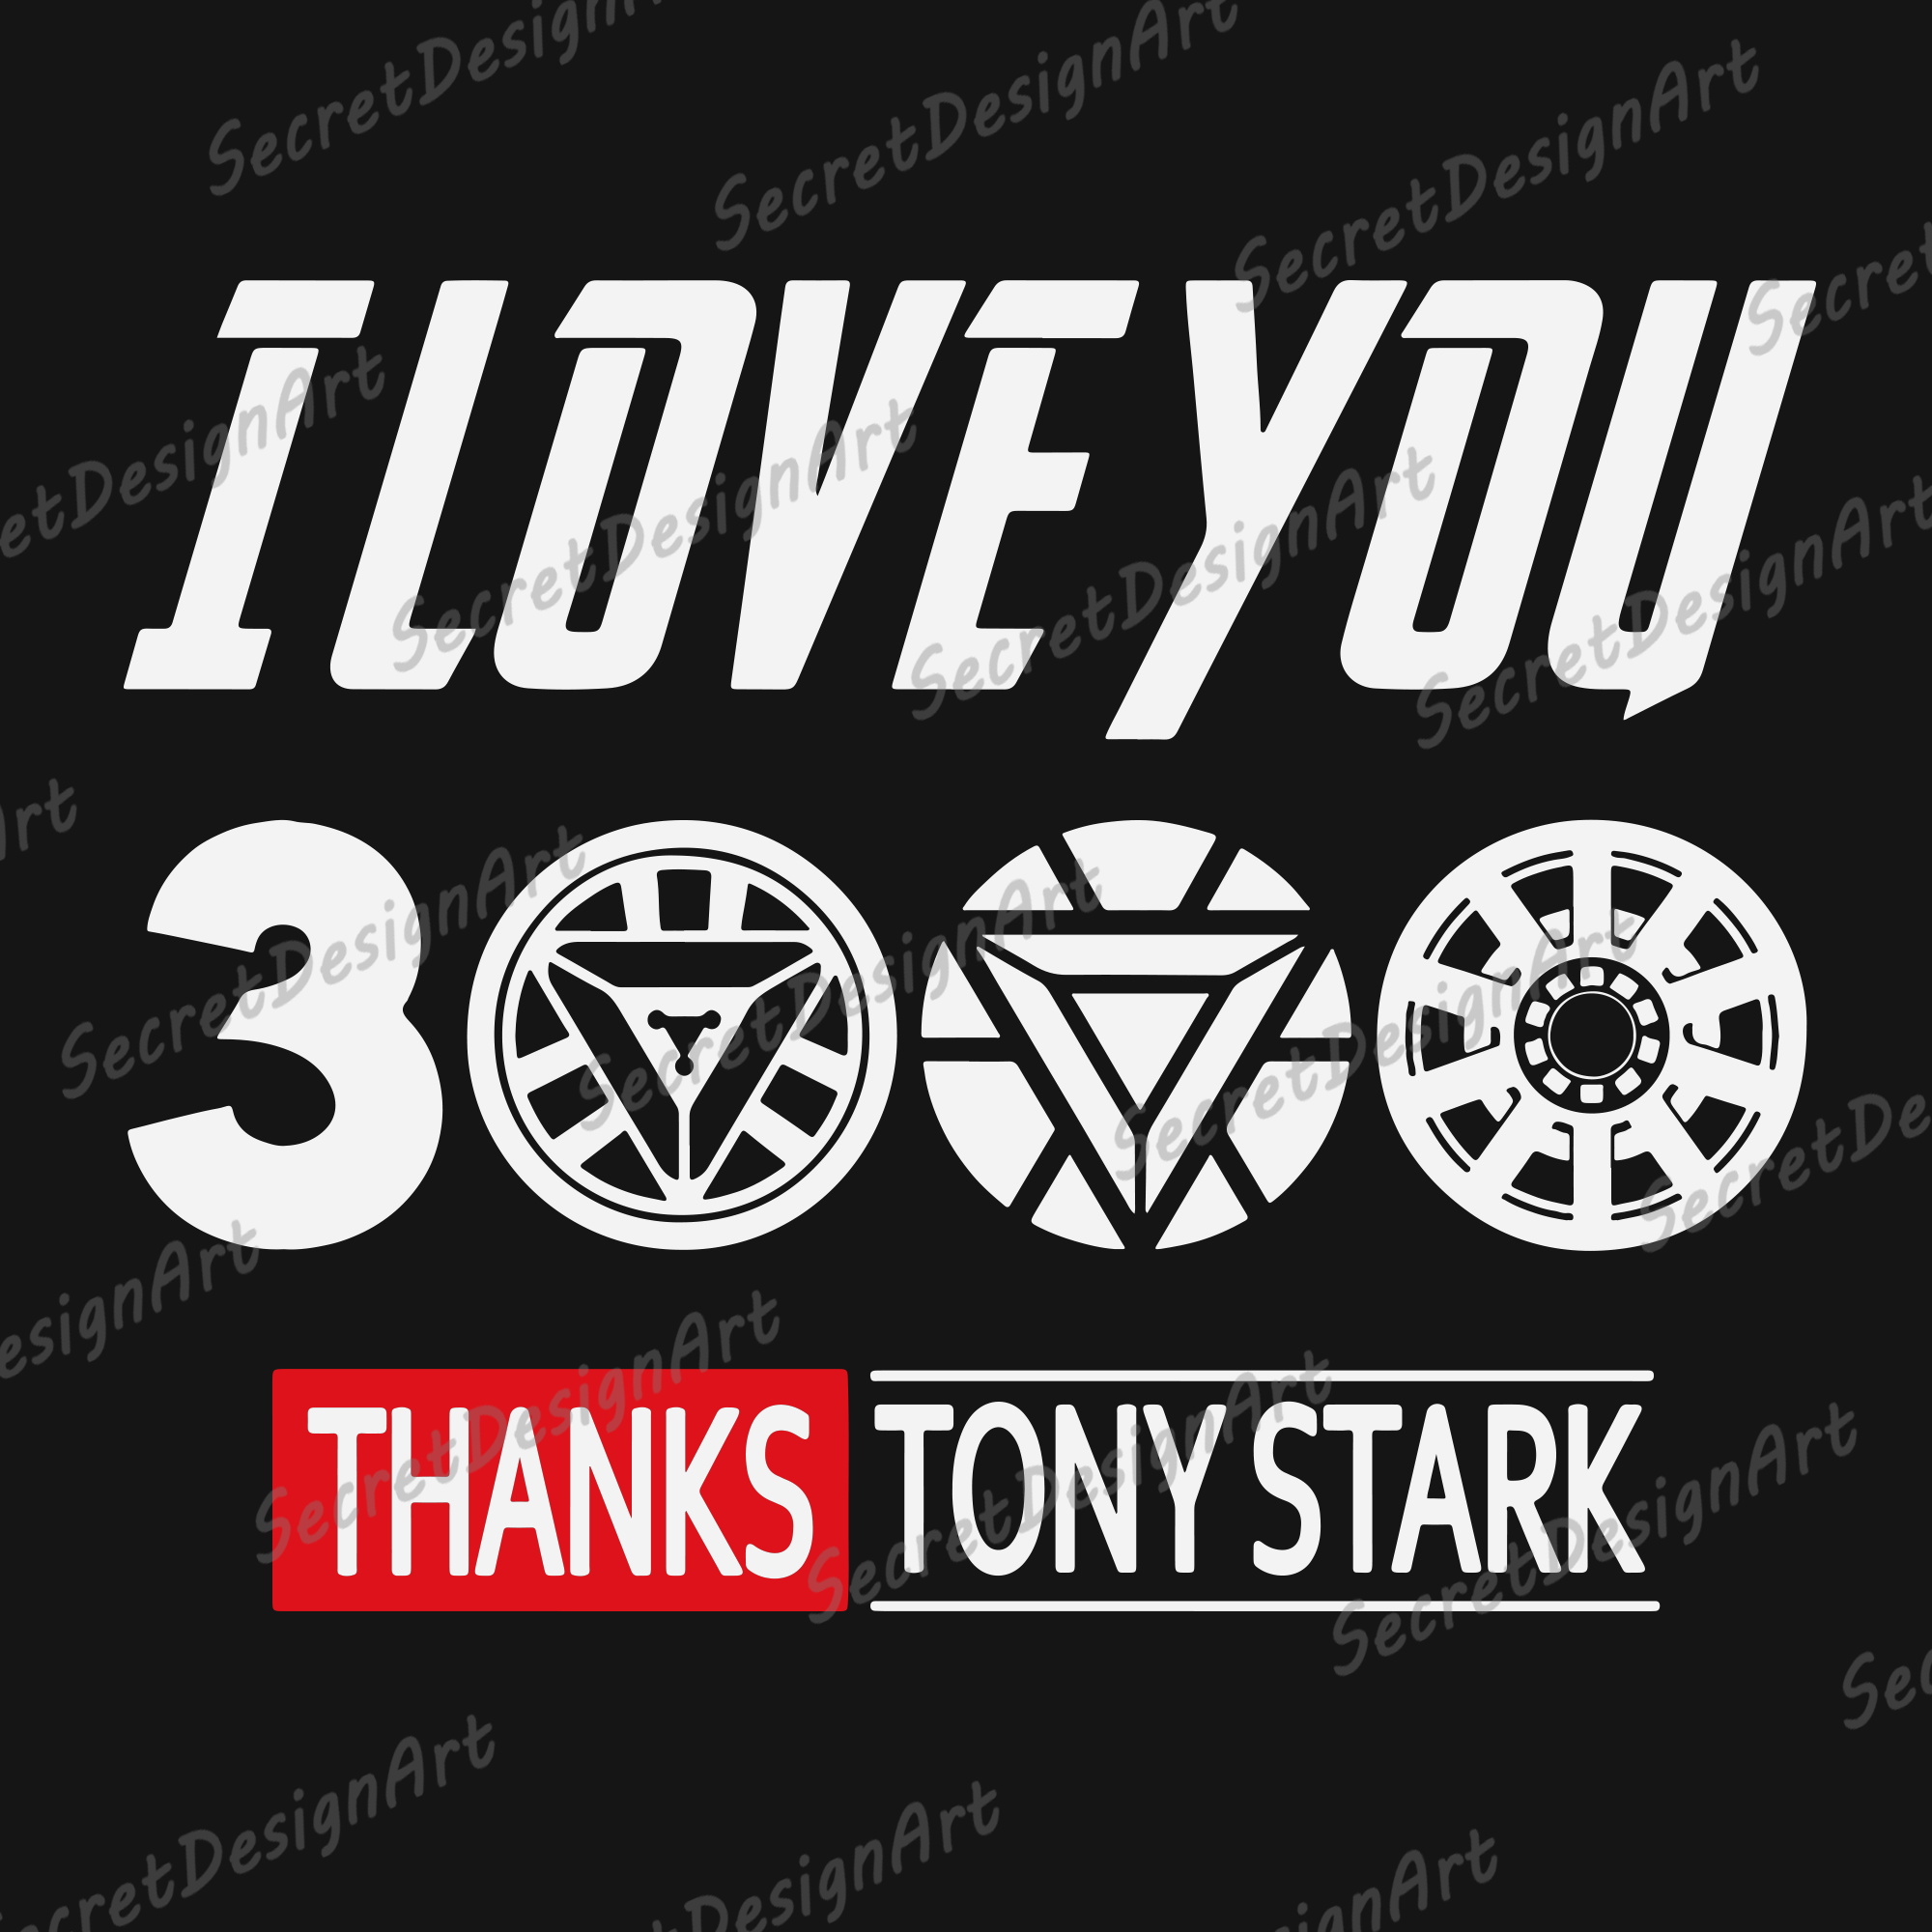 Download I Love You 3000 SVG , Avengers EndGame, Father's Day SVG